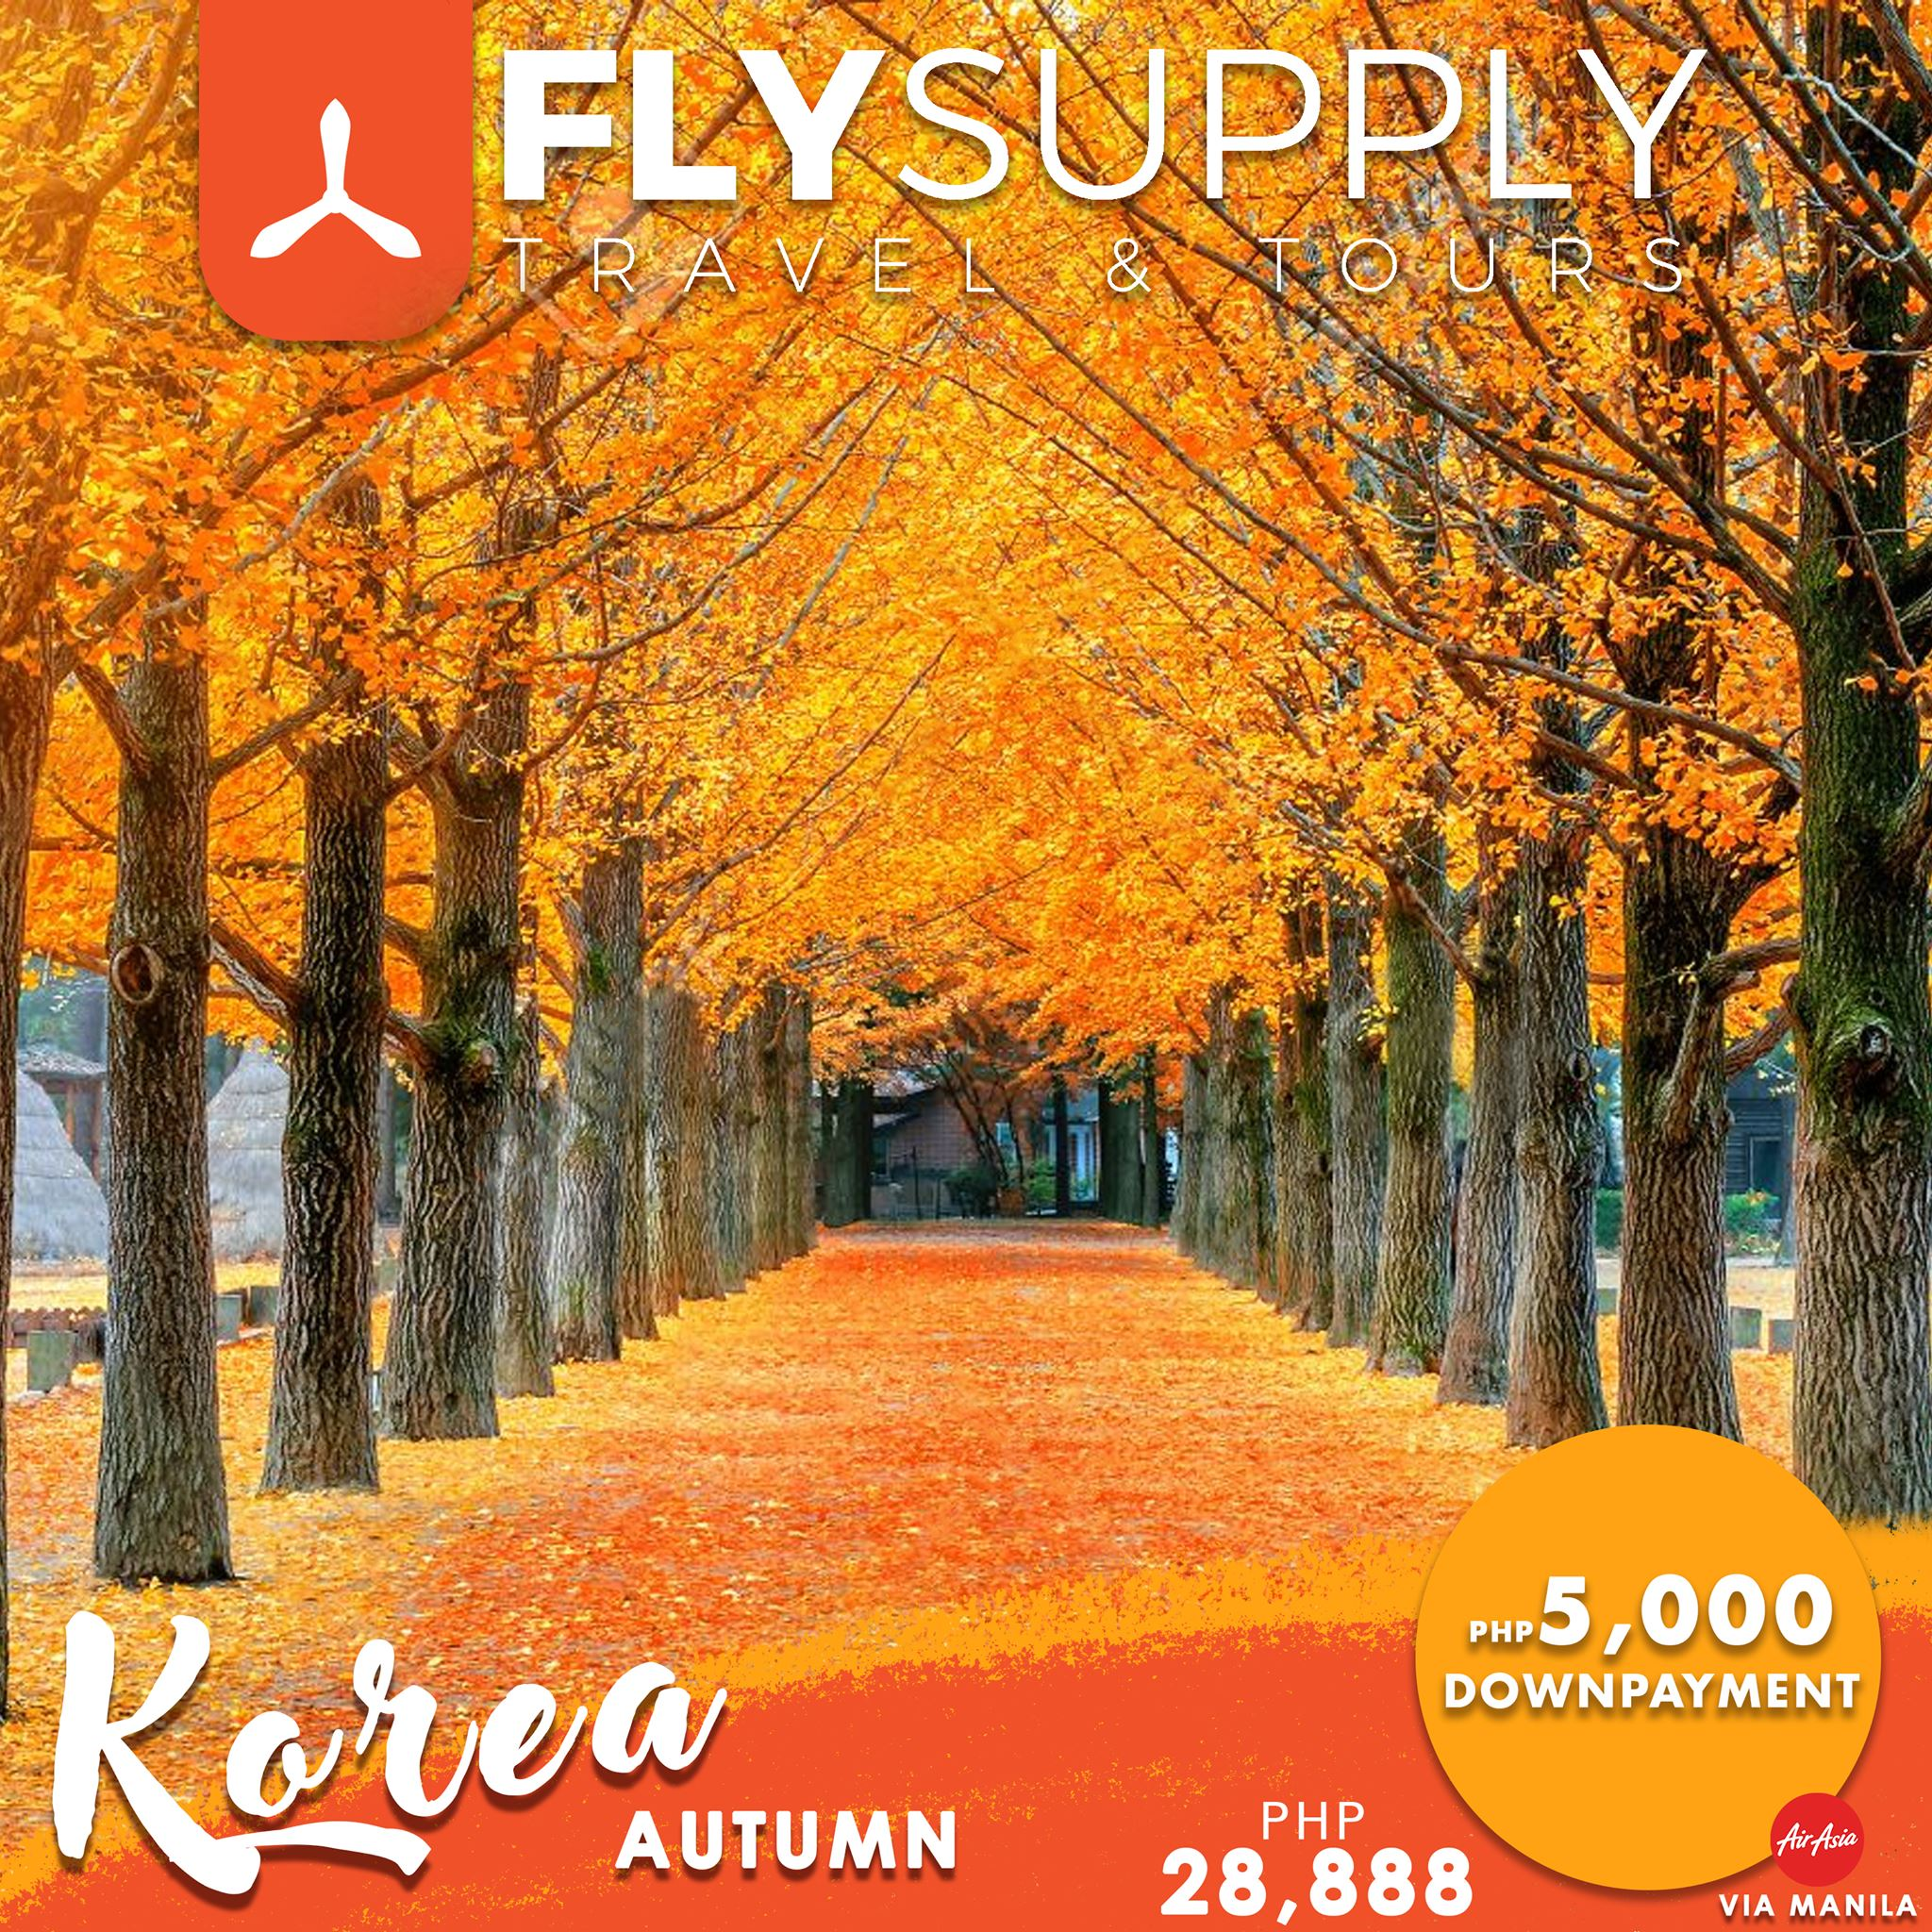 Korea tour package for fall or autumn 2019. Image credit:  Fly Supply Travel